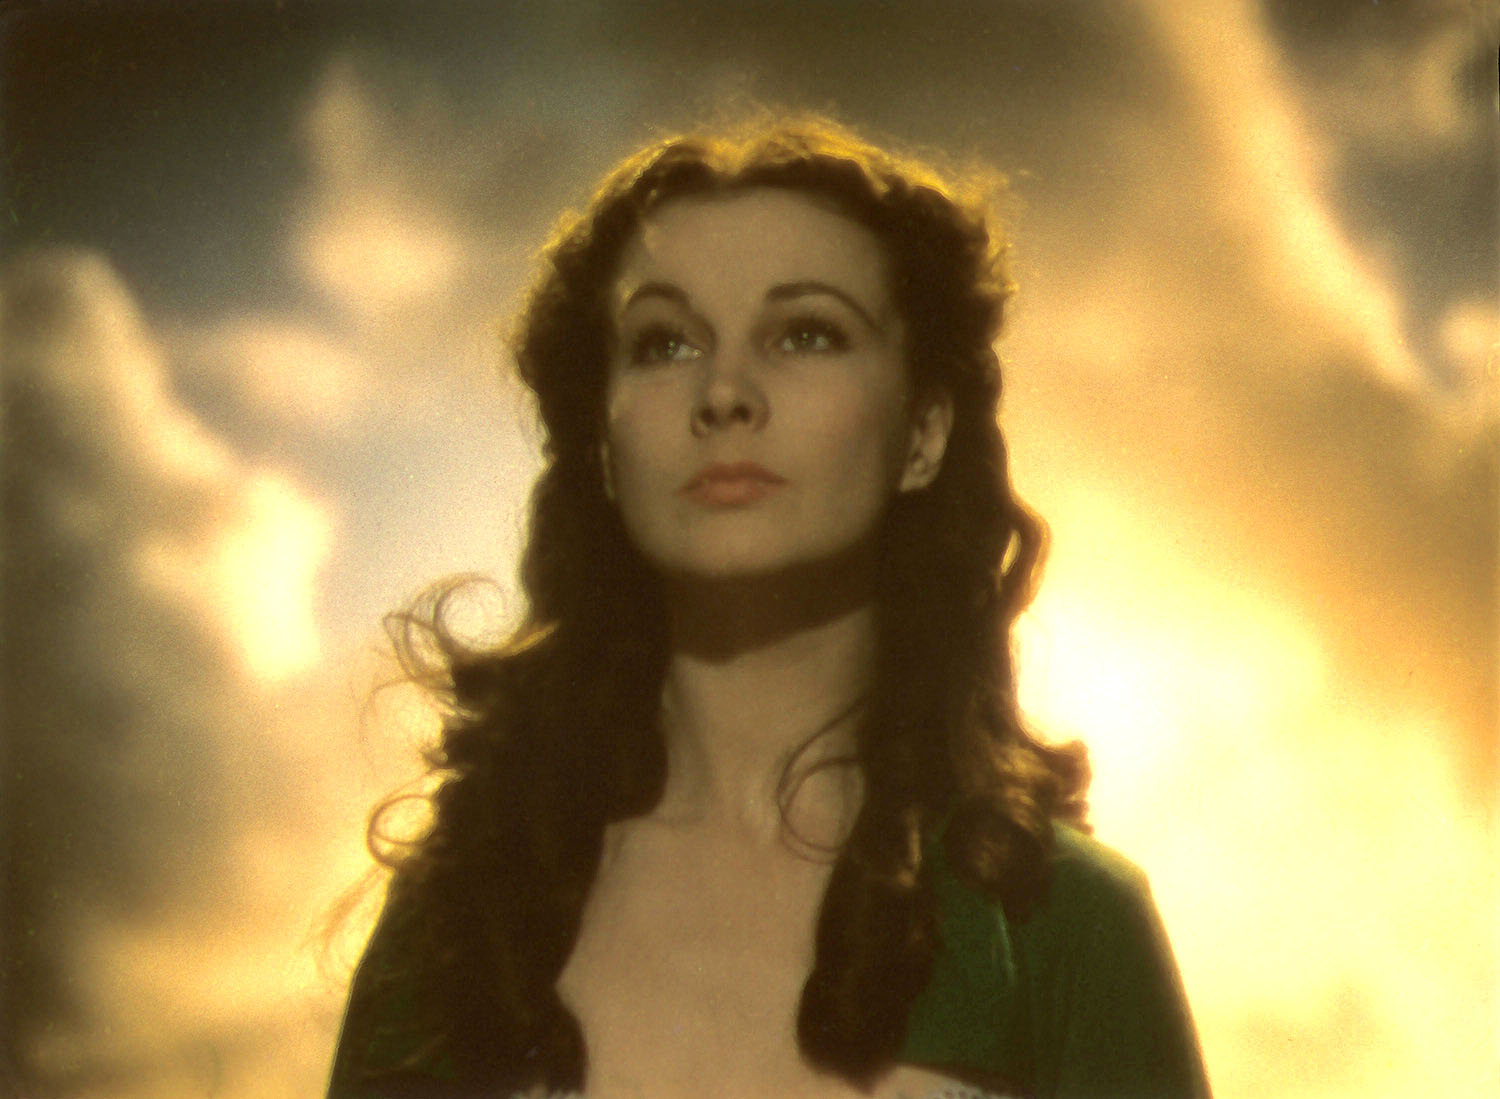 http://3.bp.blogspot.com/-5ZuiL0b19XQ/TaZrkP8zITI/AAAAAAAAAFQ/1mqATmjW0eY/s1600/gone-with-the-wind-vivien-leigh.jpg